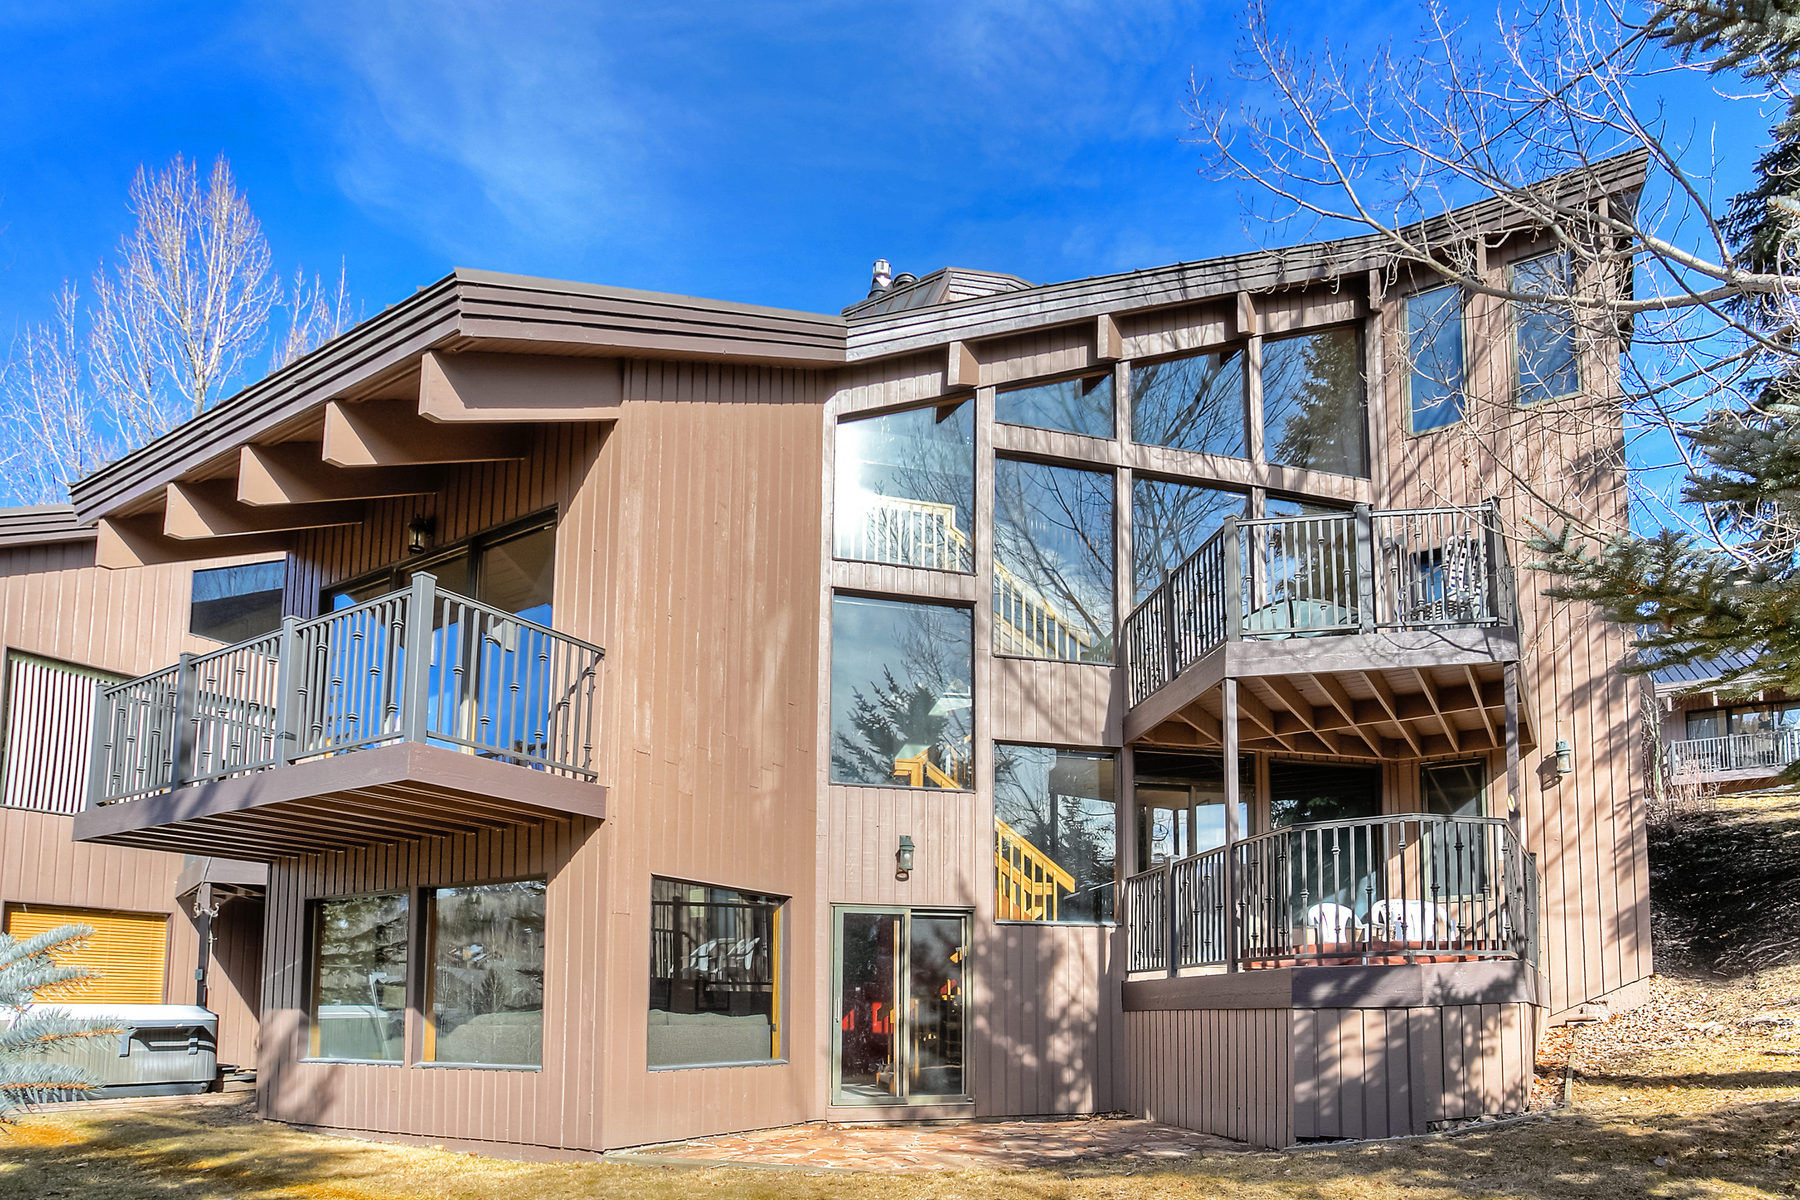 Moradia em banda para Venda às Fabulous and Sunny Deer Valley Mountain Townhome with Gorgeous Views 1240 Pinnacle Dr Park City, Utah 84060 Estados Unidos